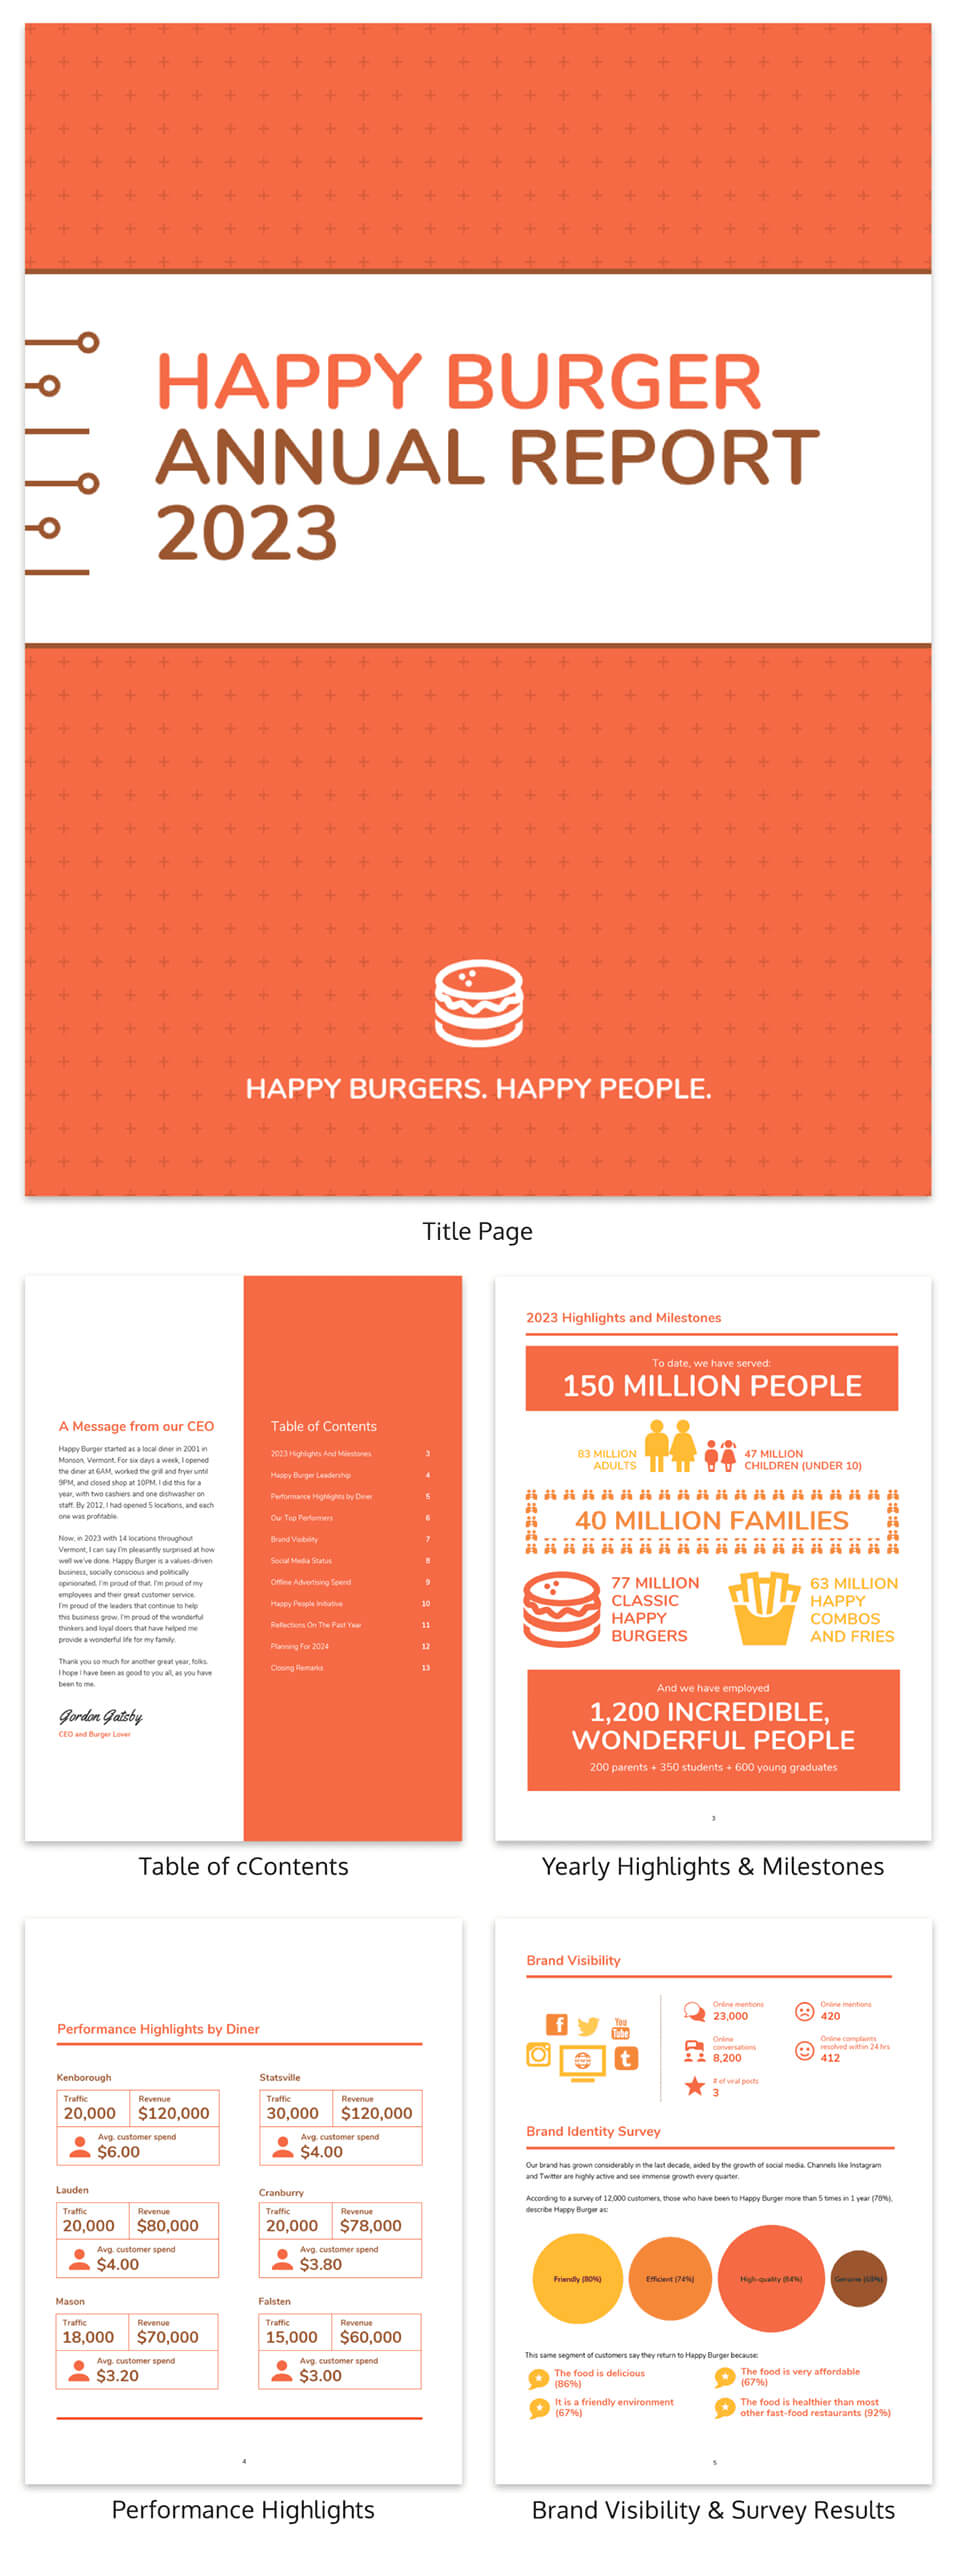 55+ Customizable Annual Report Design Templates, Examples & Tips Pertaining To Annual Report Template Word